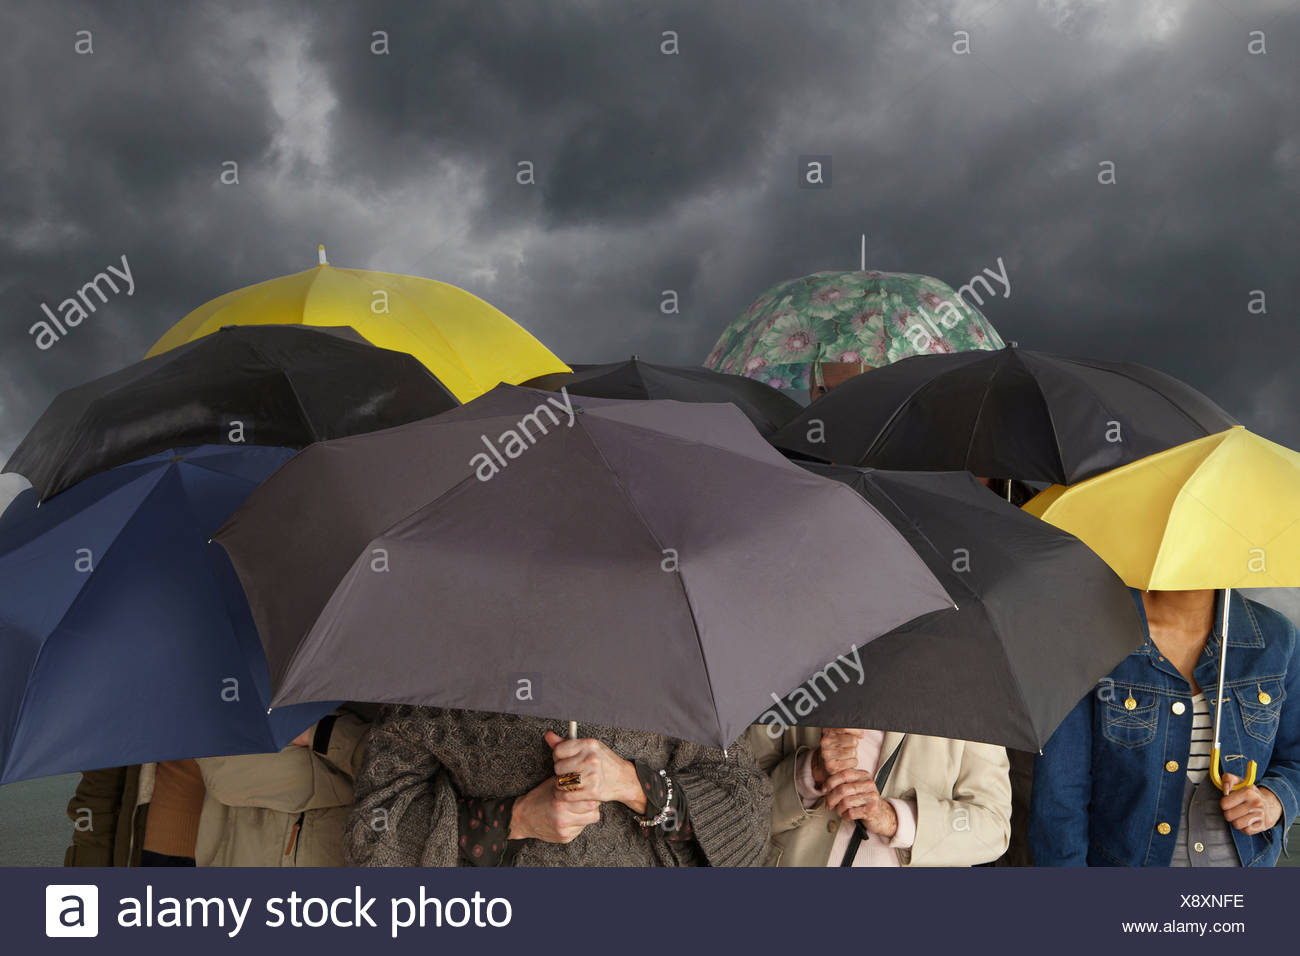 Group of people with umbrellas - Stock Image